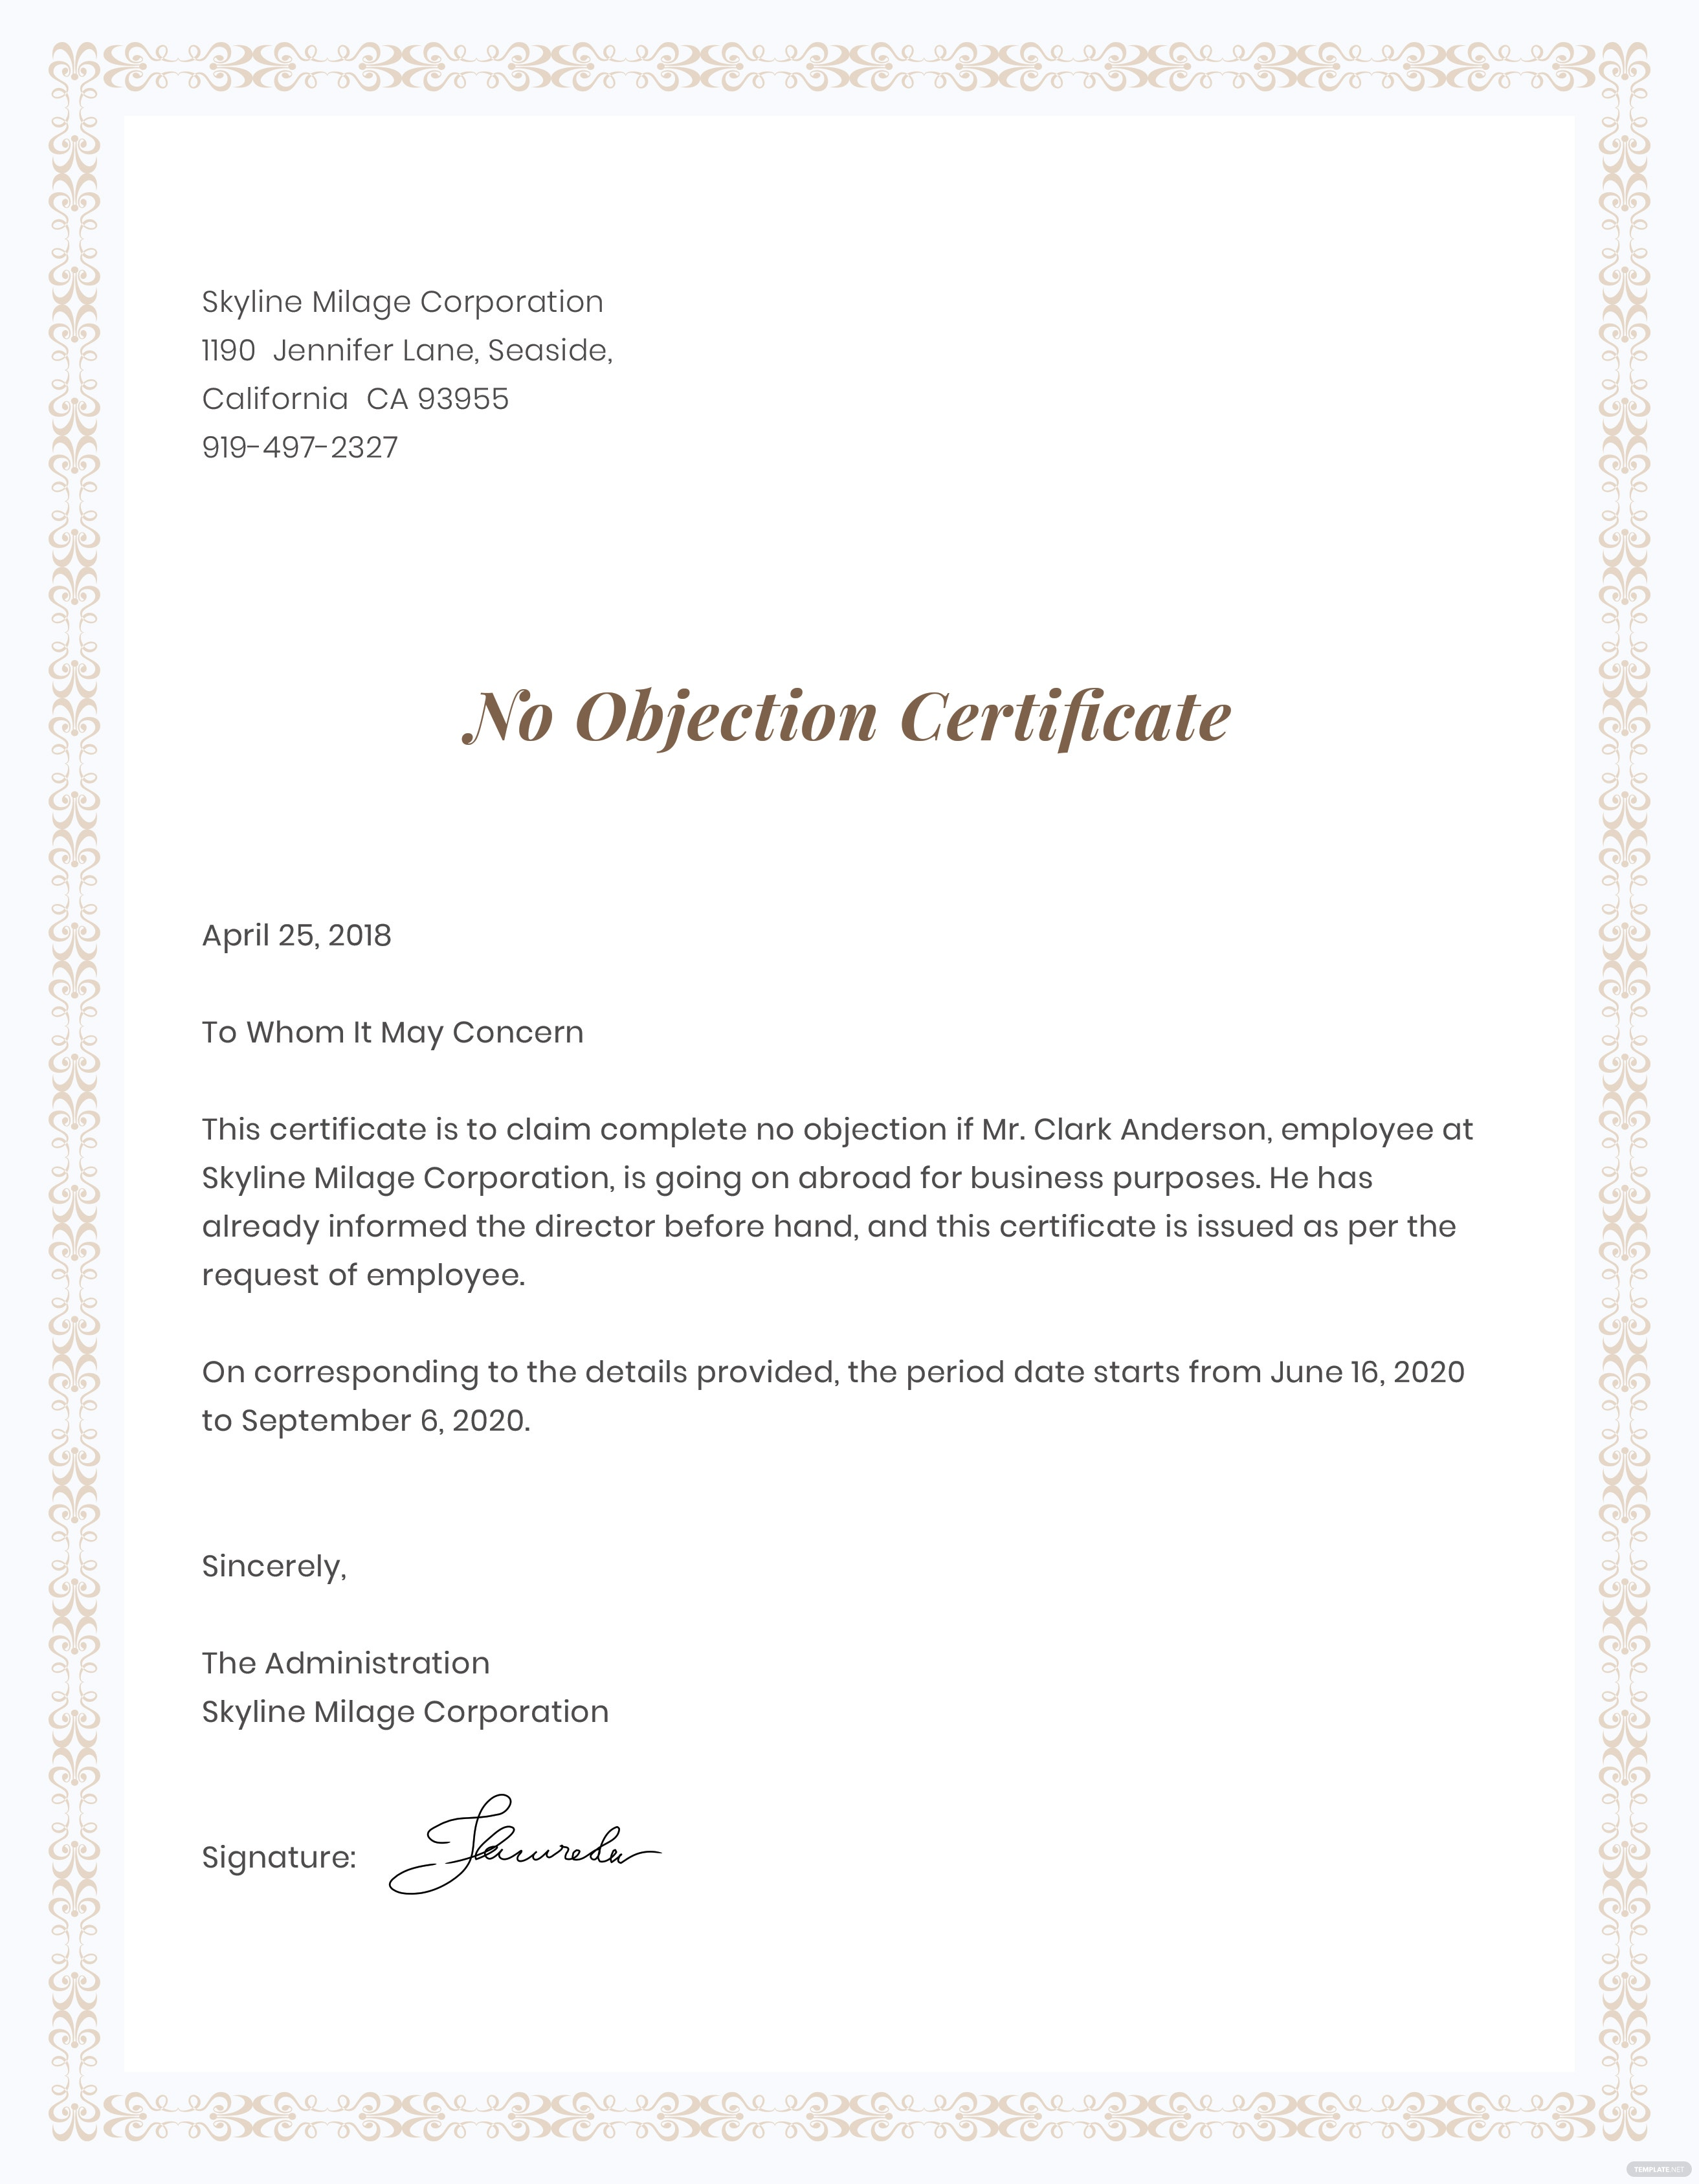 No objection certificate for employee template in adobe photoshop no objection certificate for employee thecheapjerseys Gallery